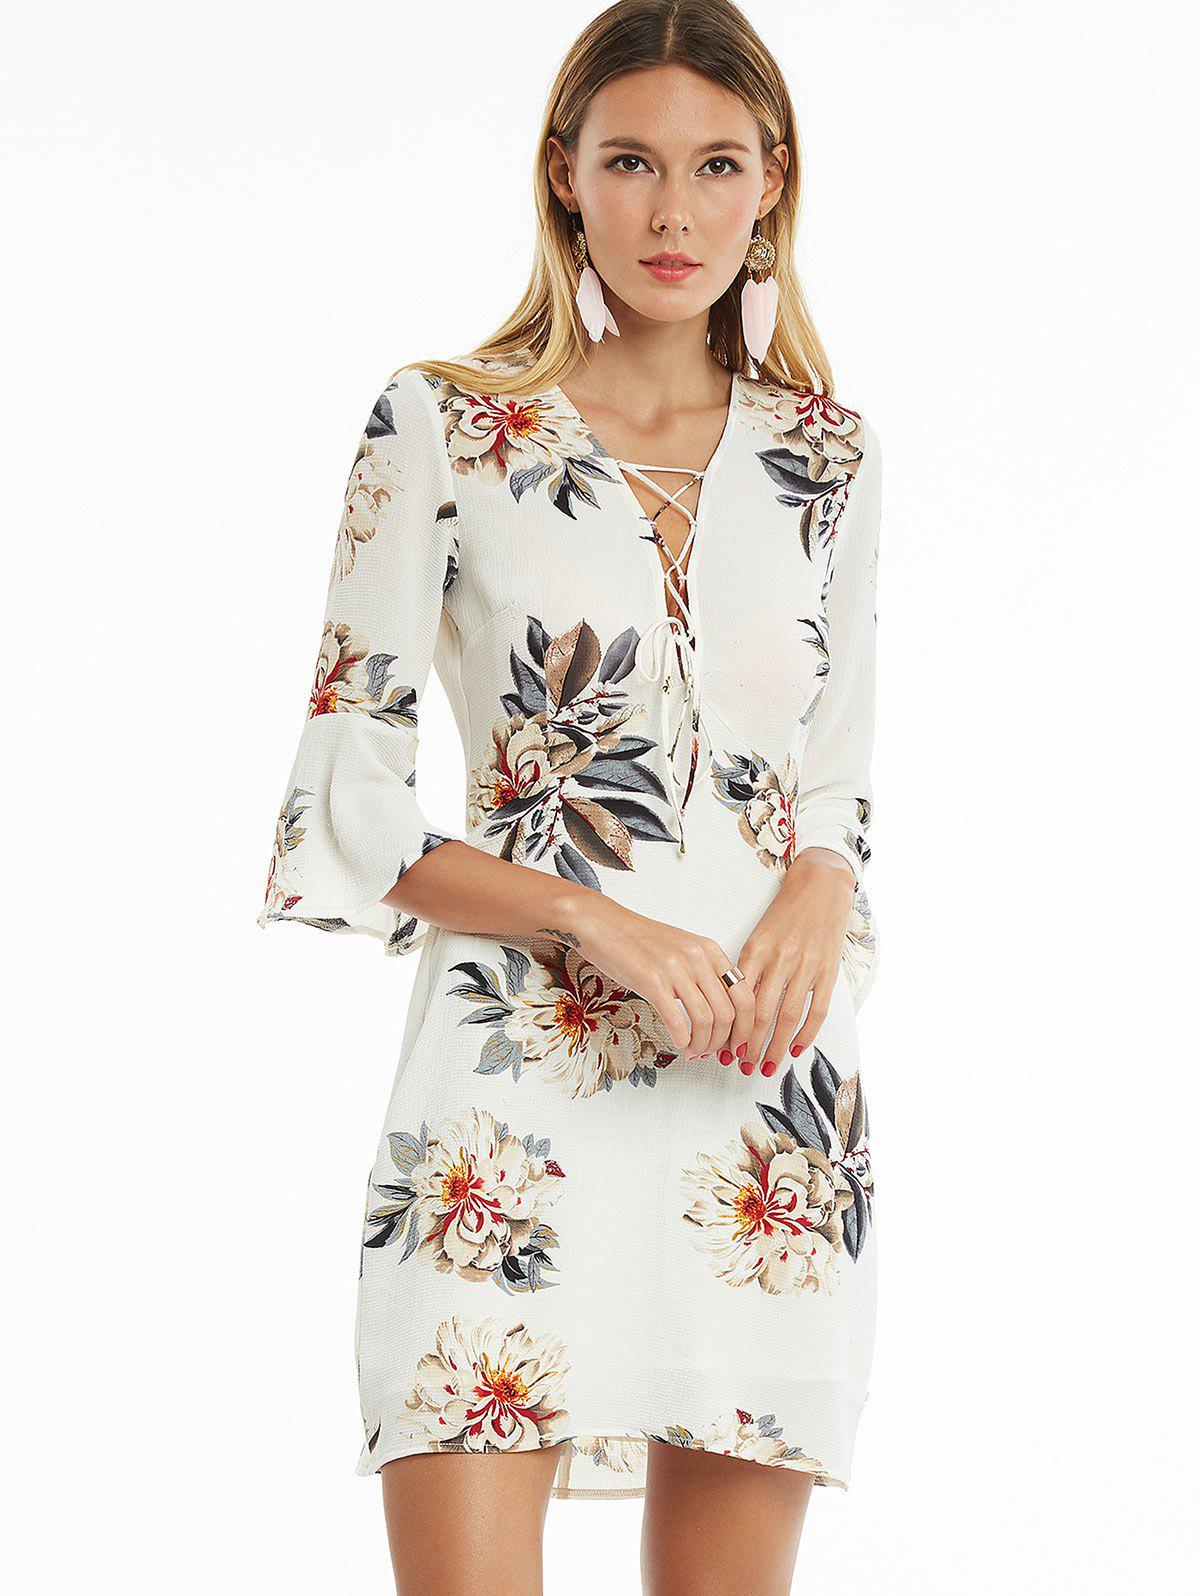 Flare Sleeve Floral Print Lace Up Dress Blanc XL